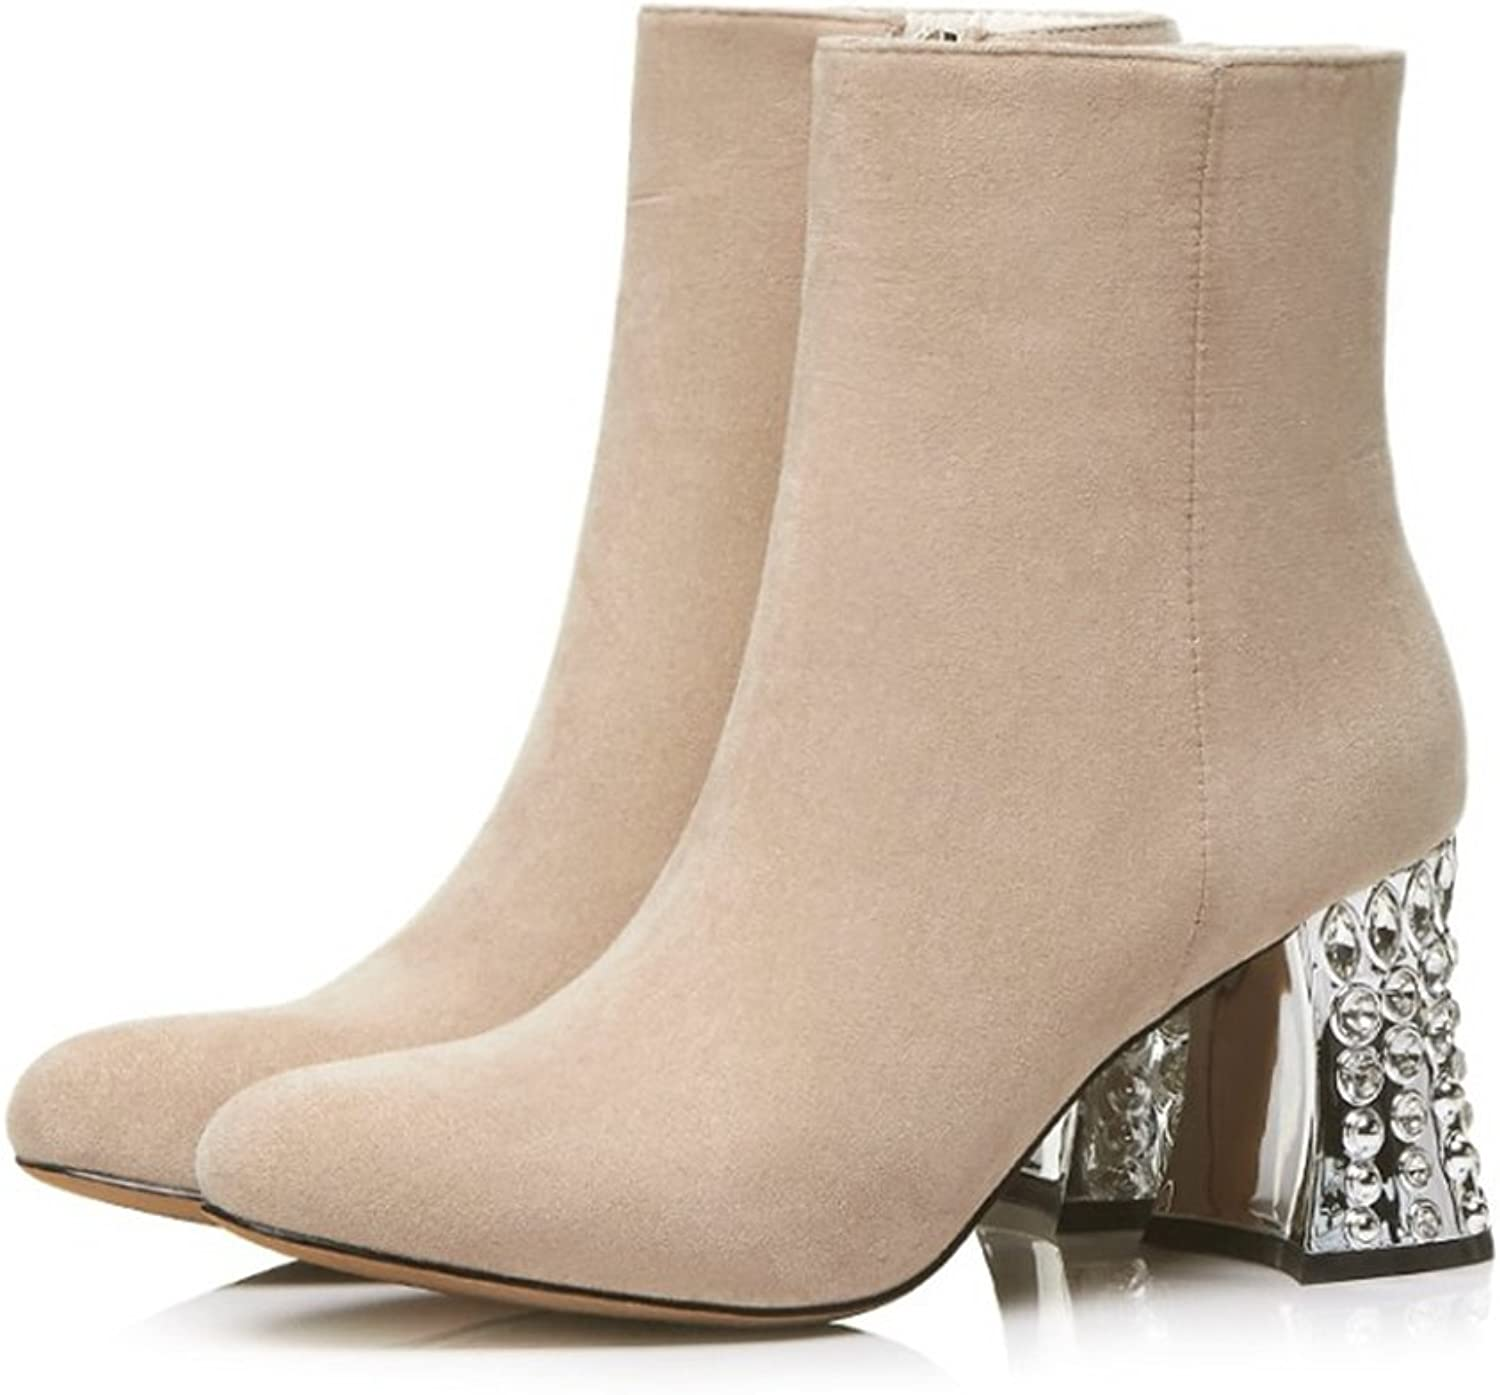 QZUnique Women Chunky Mid-Heel with Rhinestone Side Zipper Round Toe Ankle Booties Genuine Leather Boots